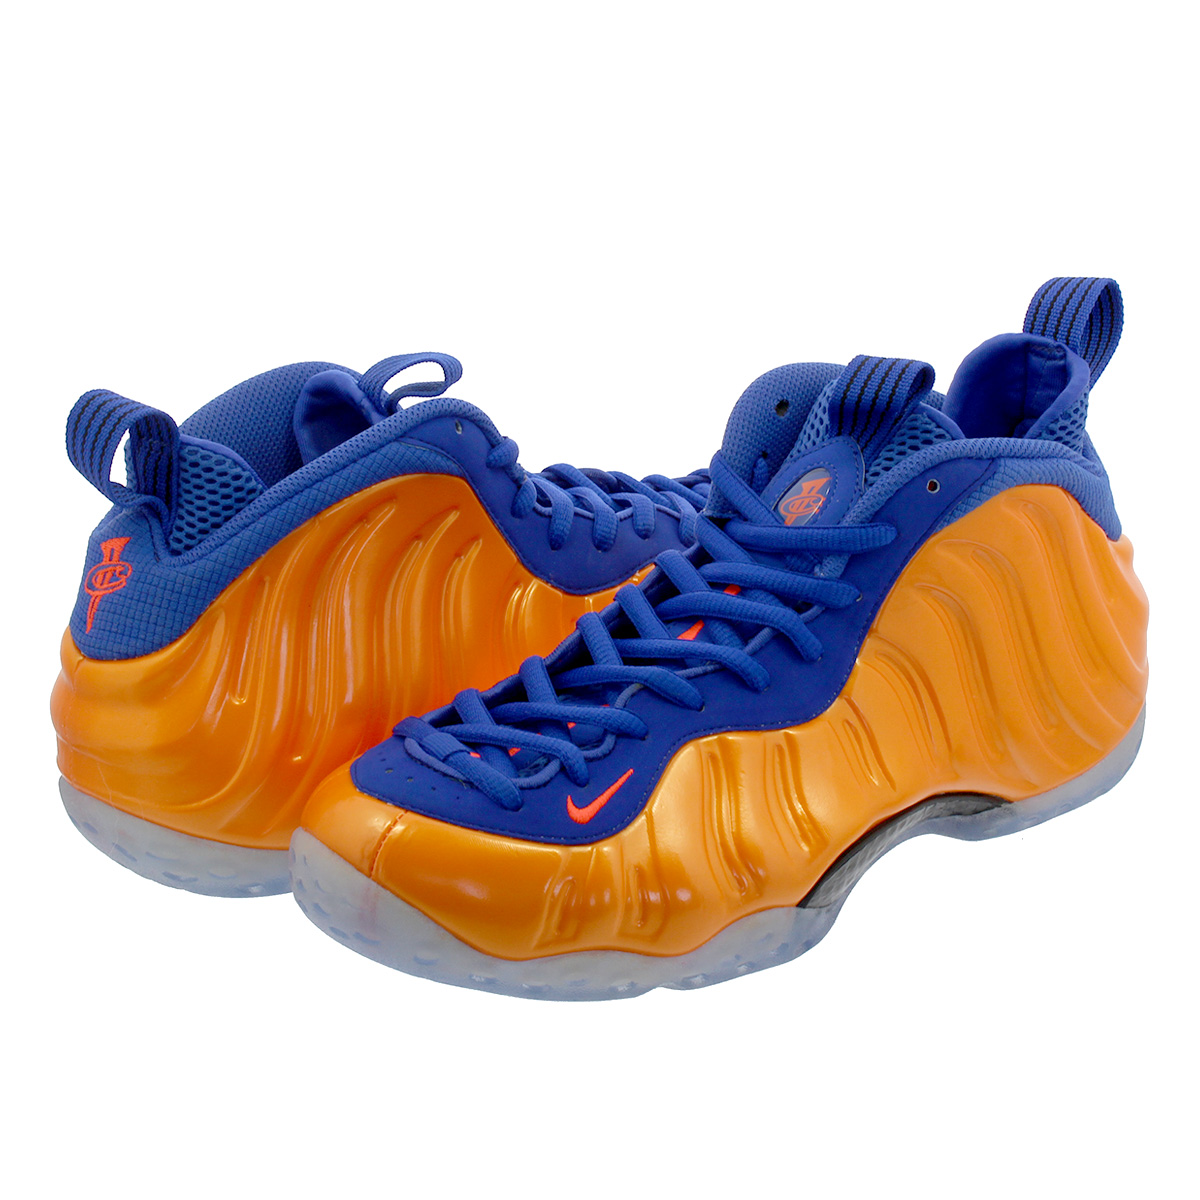 new styles b94ce c913e SELECT SHOP LOWTEX: NIKE AIR FOAMPOSITE ONE ナイキエアフォームポジットワン TOTAL CRIMSON/GAME  ROYAL/BLACK 314,996-801 | Rakuten Global Market